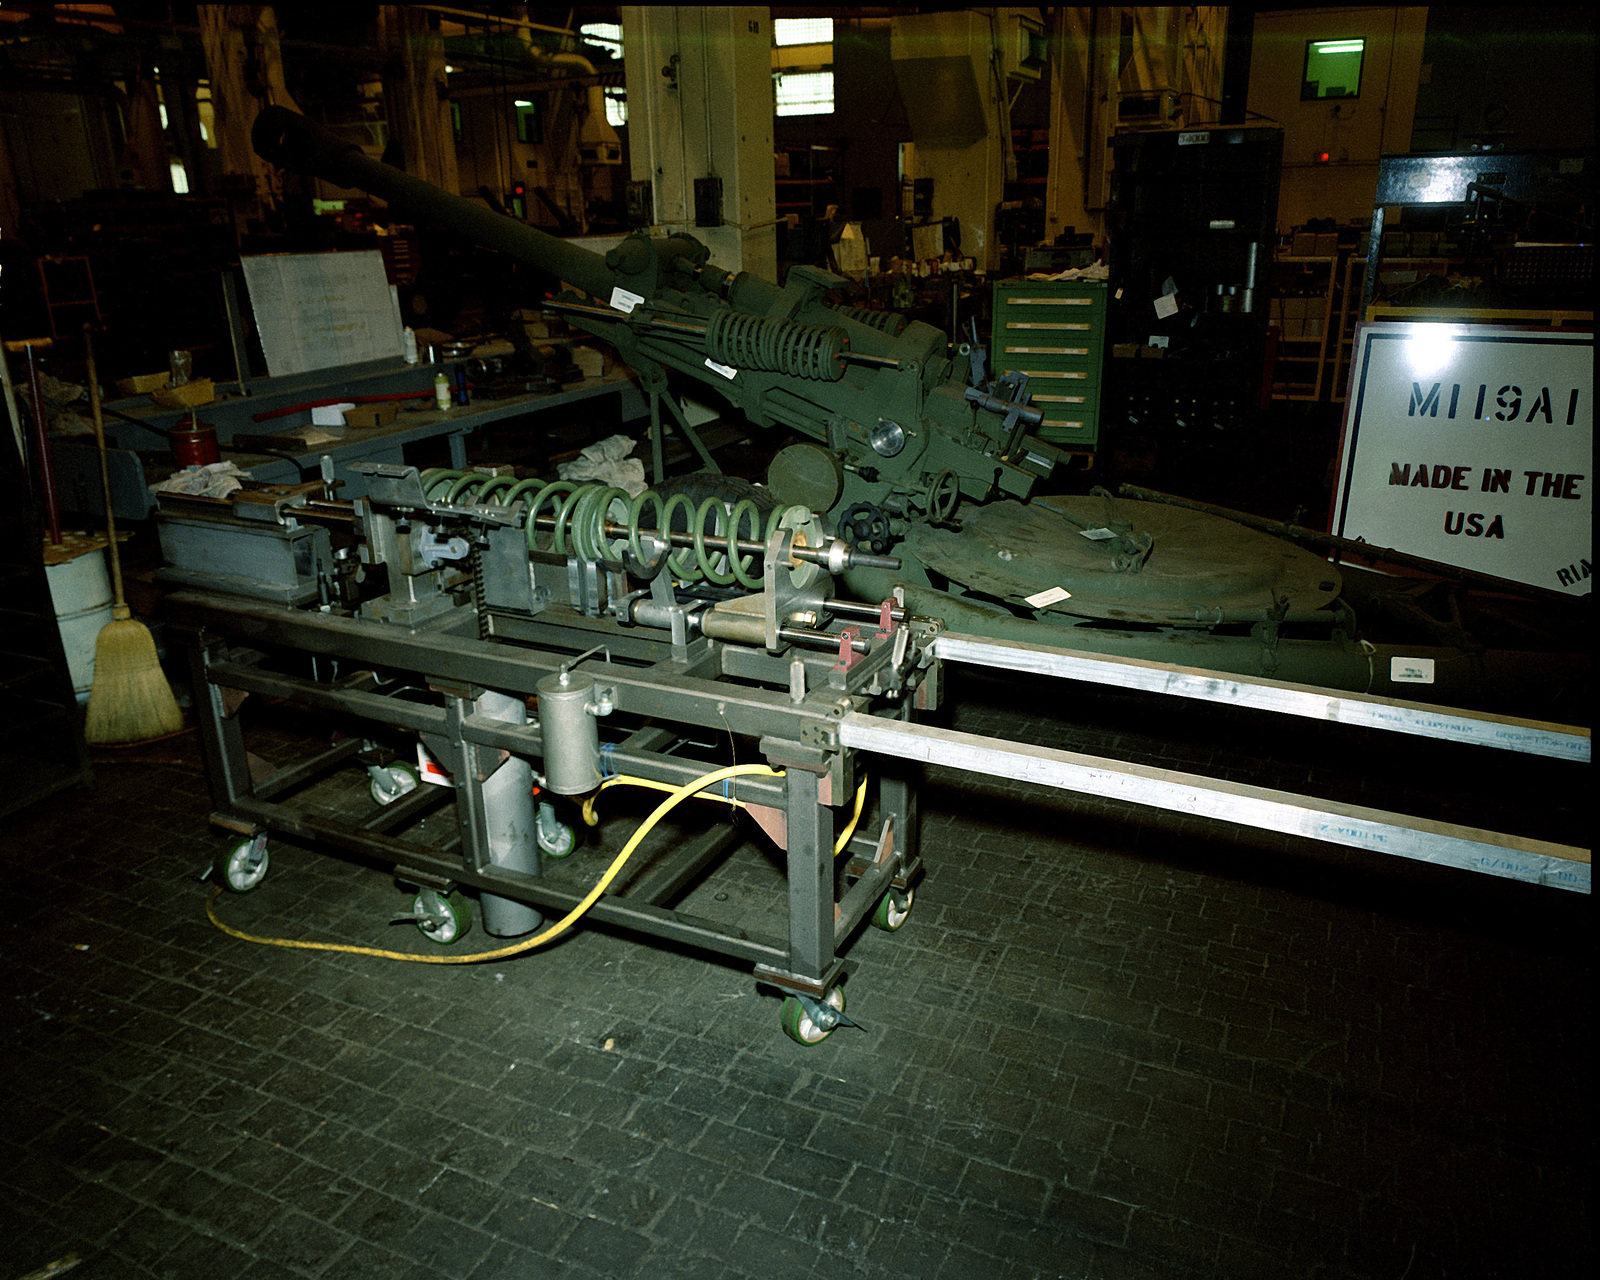 A spring compressor is used to assemble the balance gear of a 105mm M-119 light gun at the Rock Island Army Arsenal